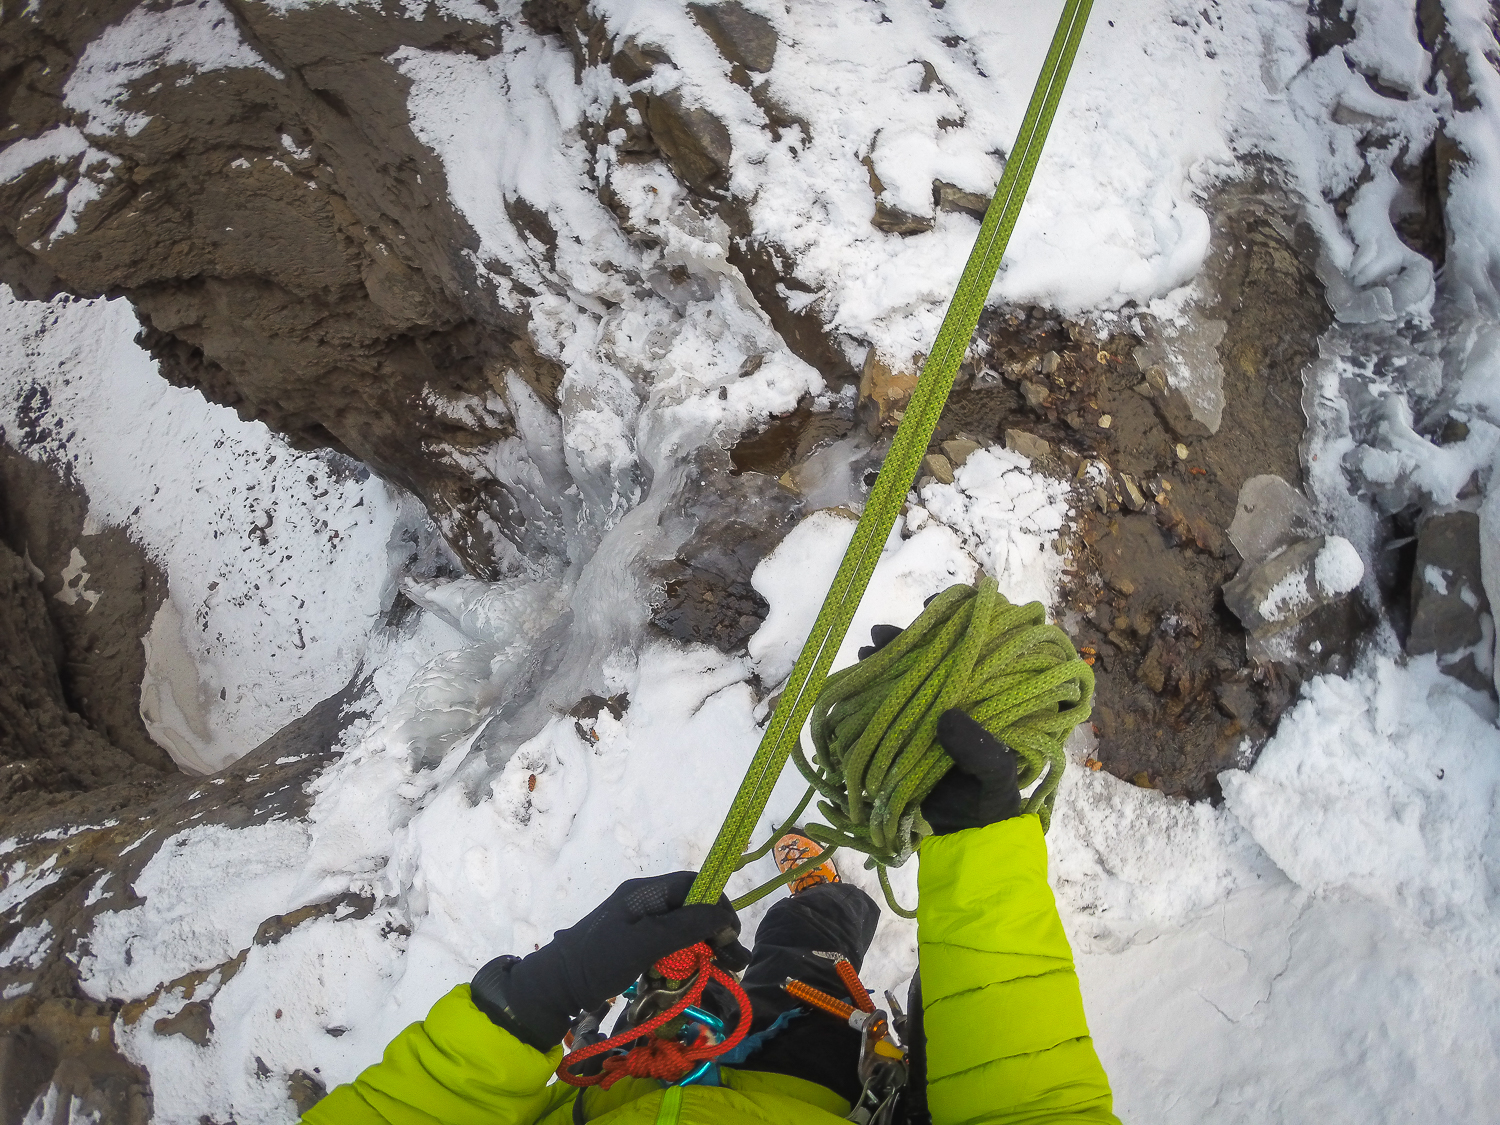 The GoPro has a great way of capturing the moments between while climbing